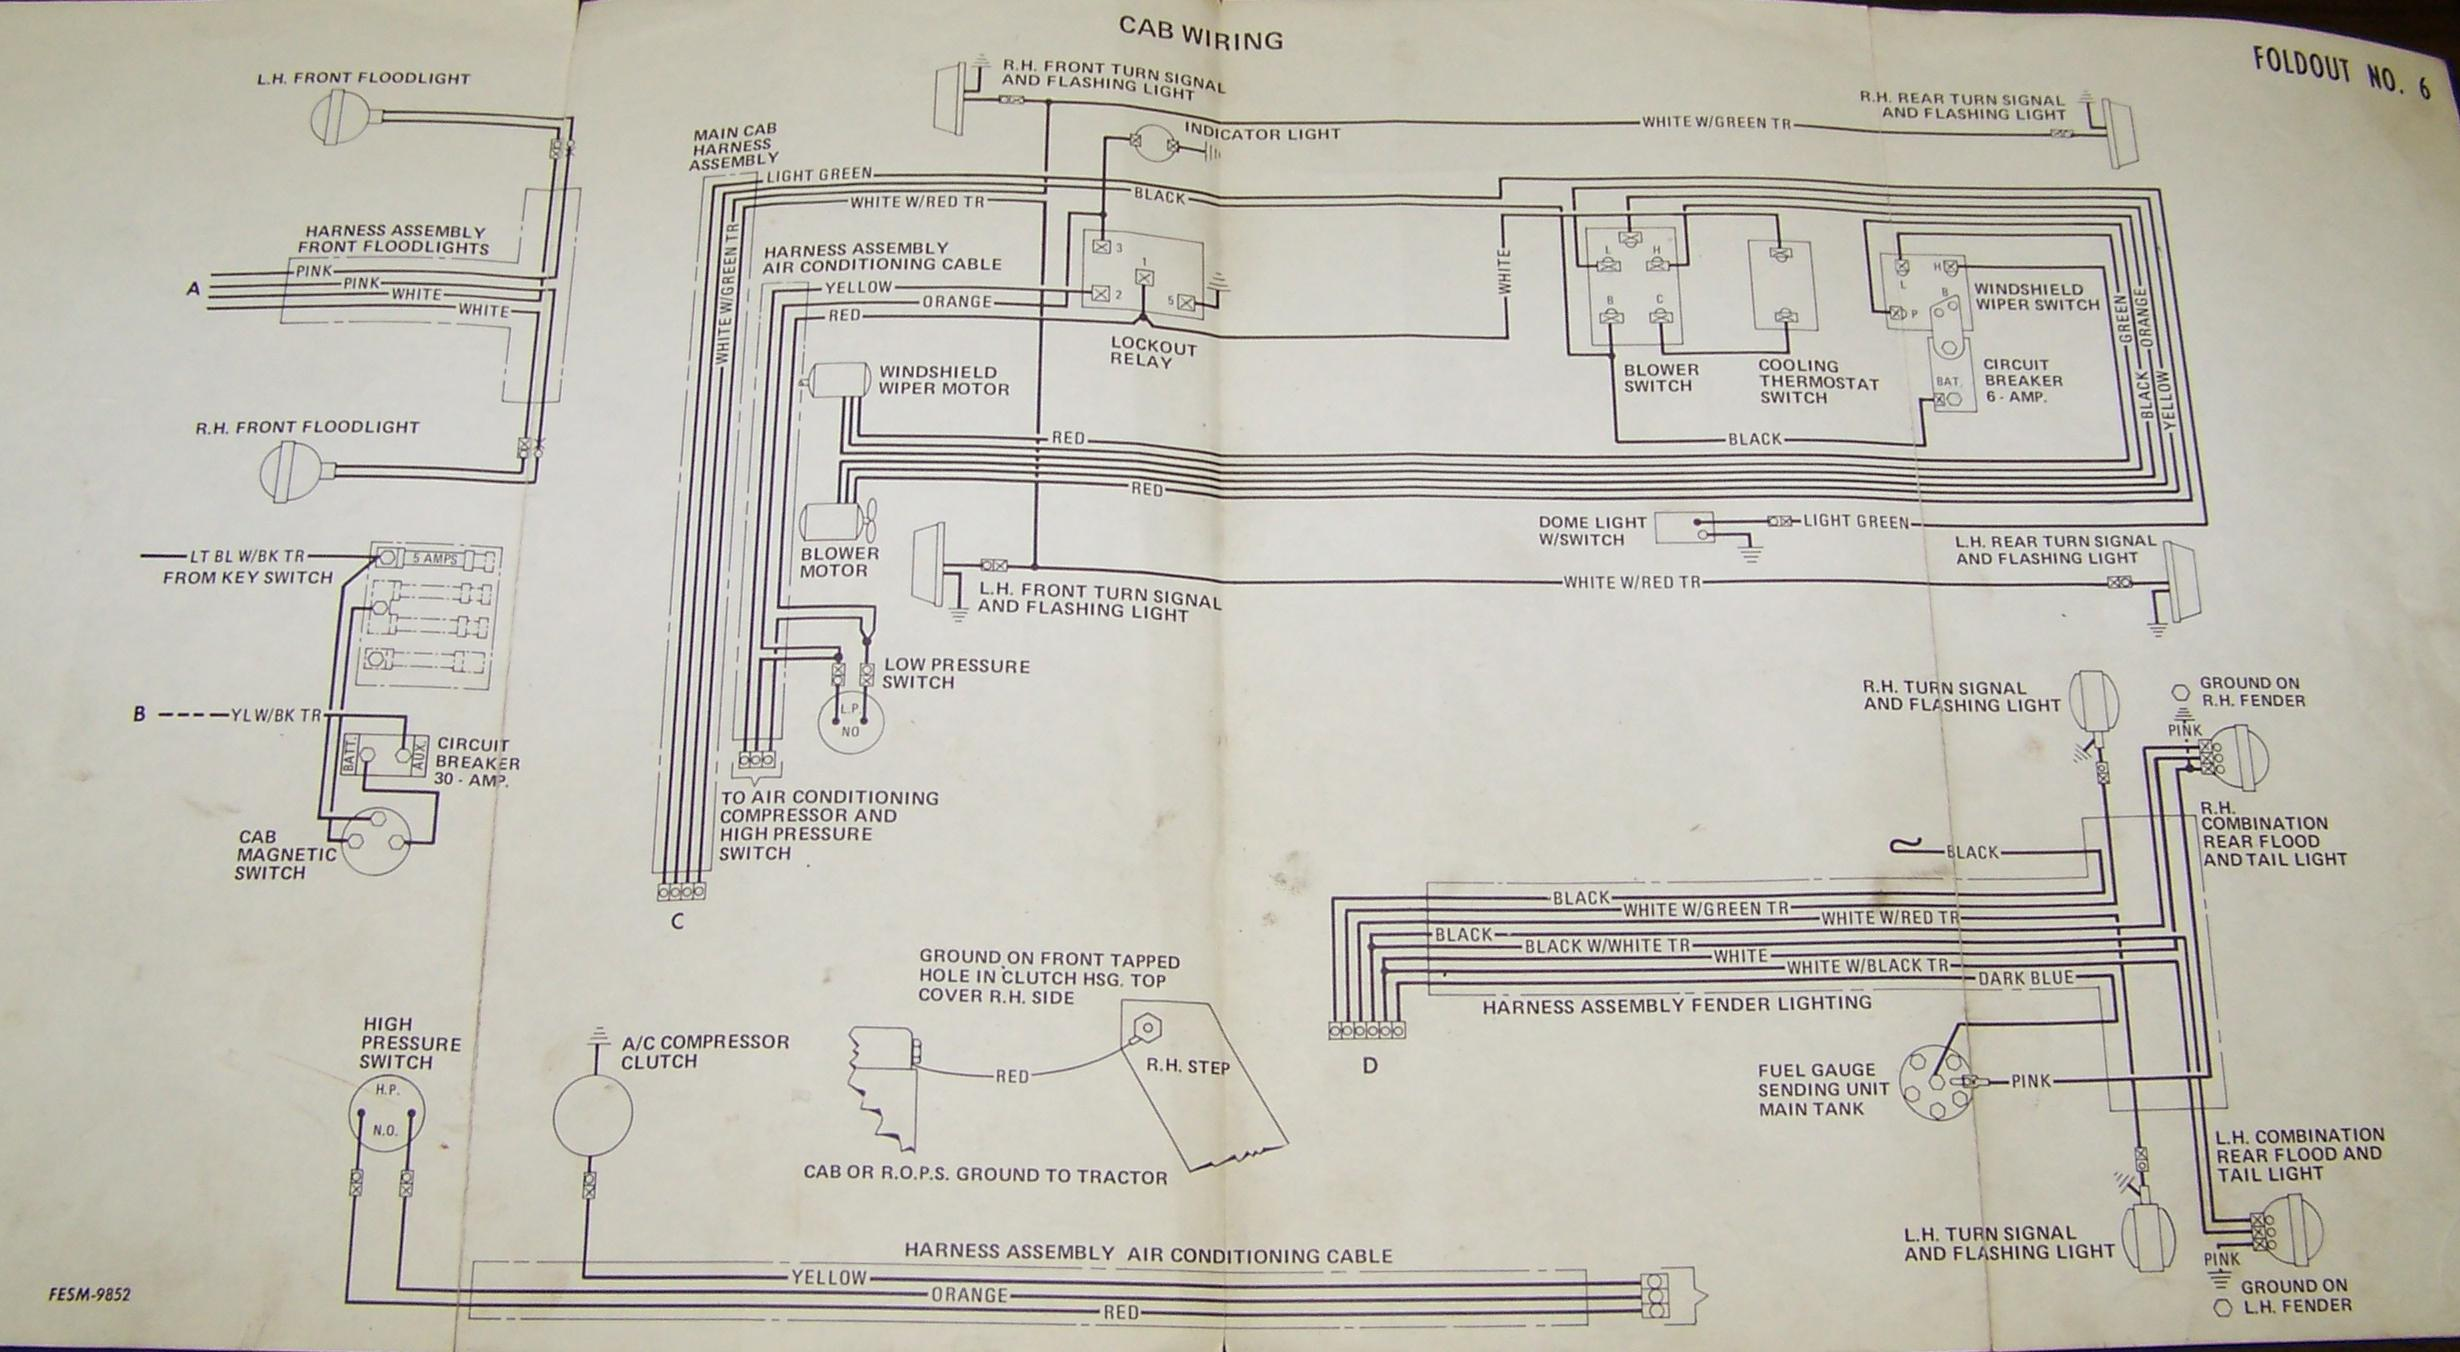 ih 3444 tractor wiring diagram 1486 electrical - general ih - red power magazine community 806 ih tractor wiring diagram